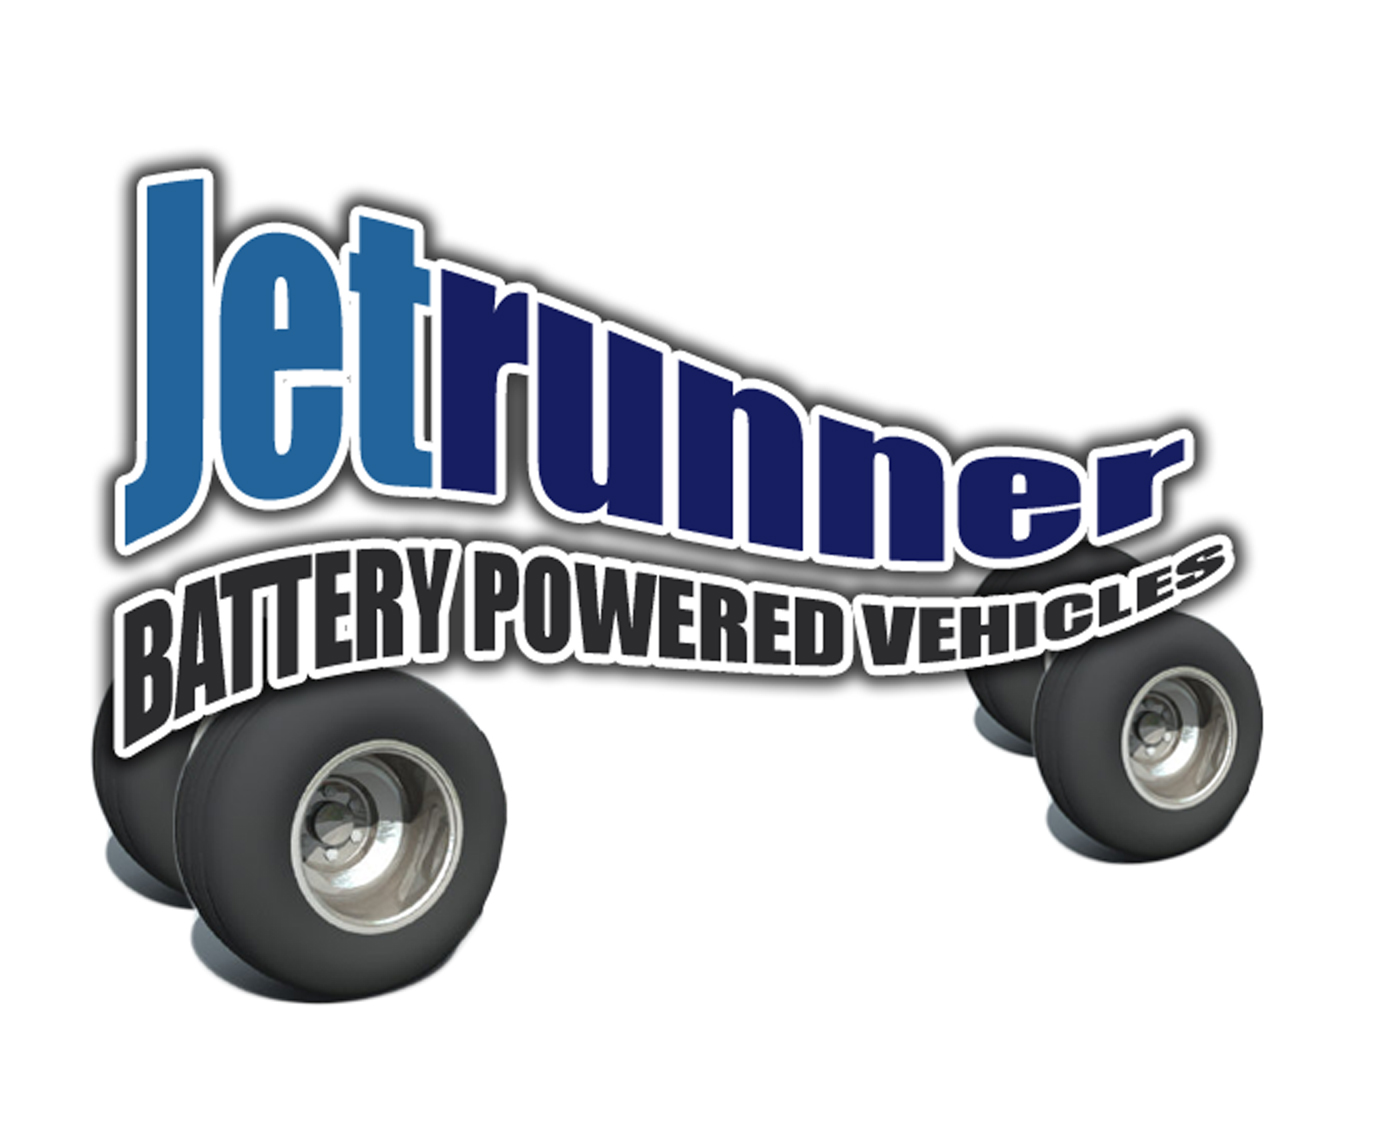 Jetrunner Battery Power